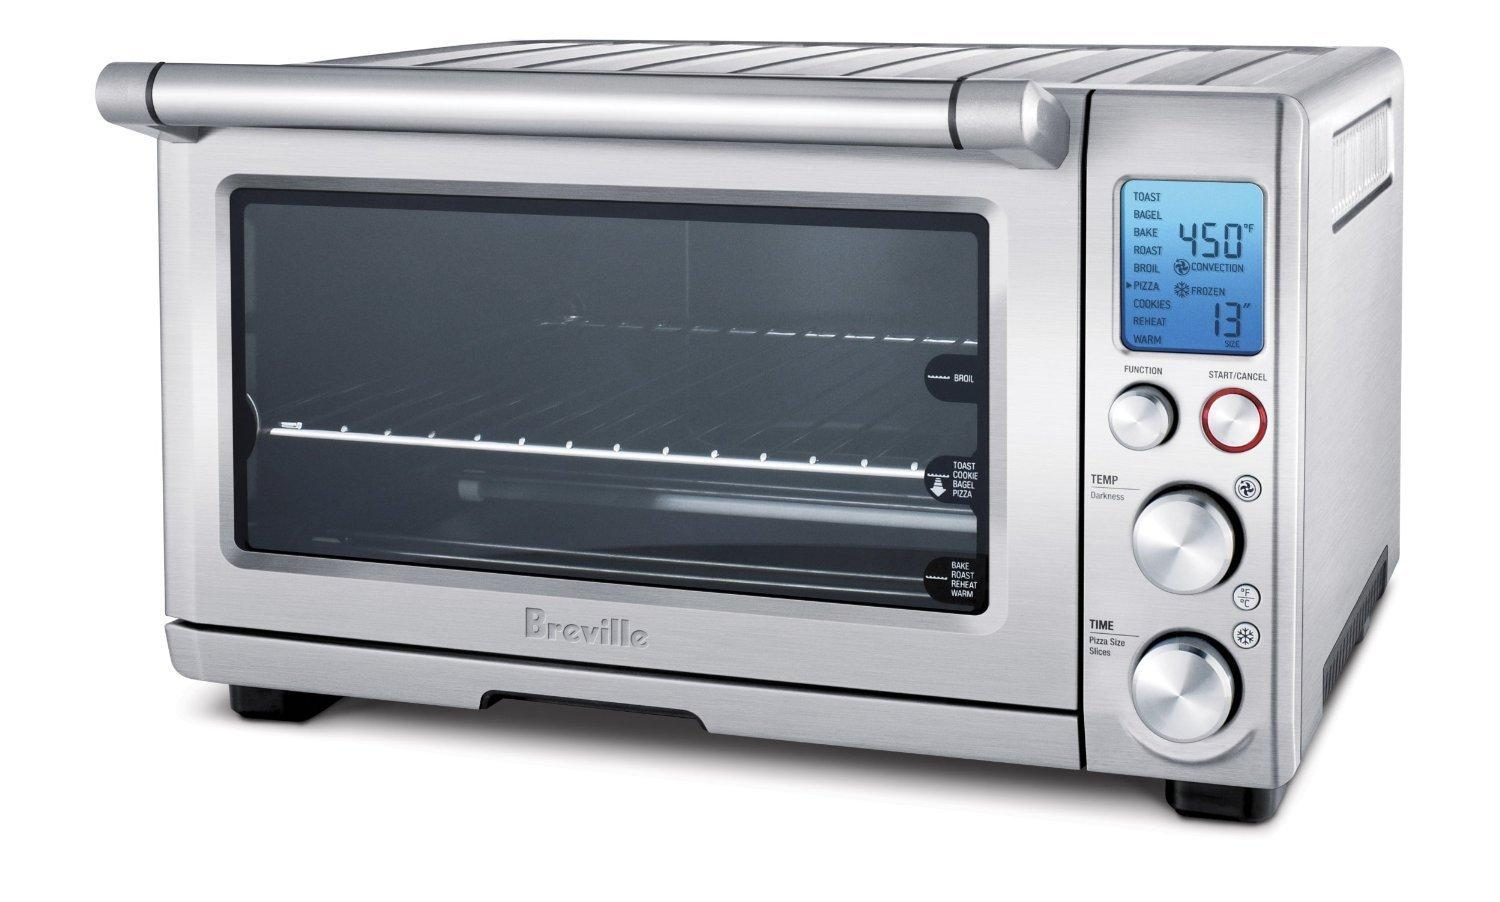 $199.99 The Smart Oven by Breville